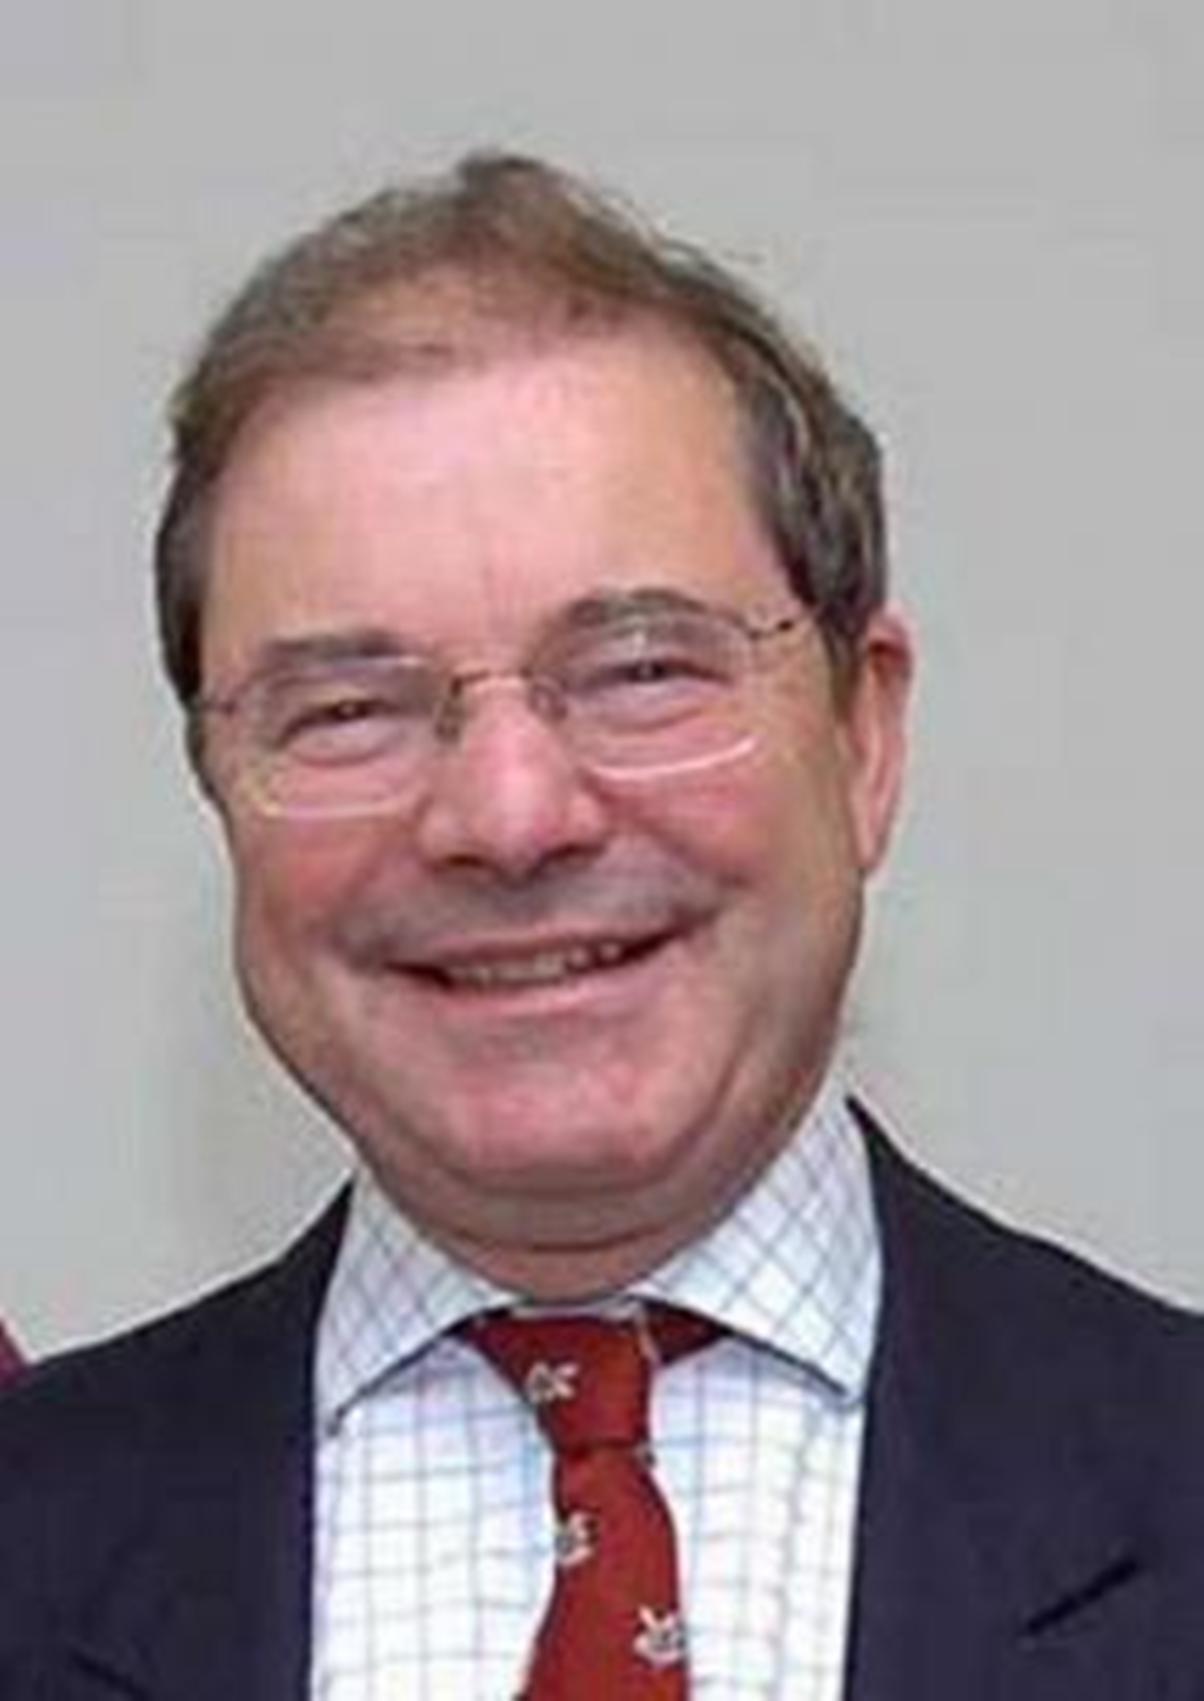 Cotswold MP Geoffrey Clifton-Brown